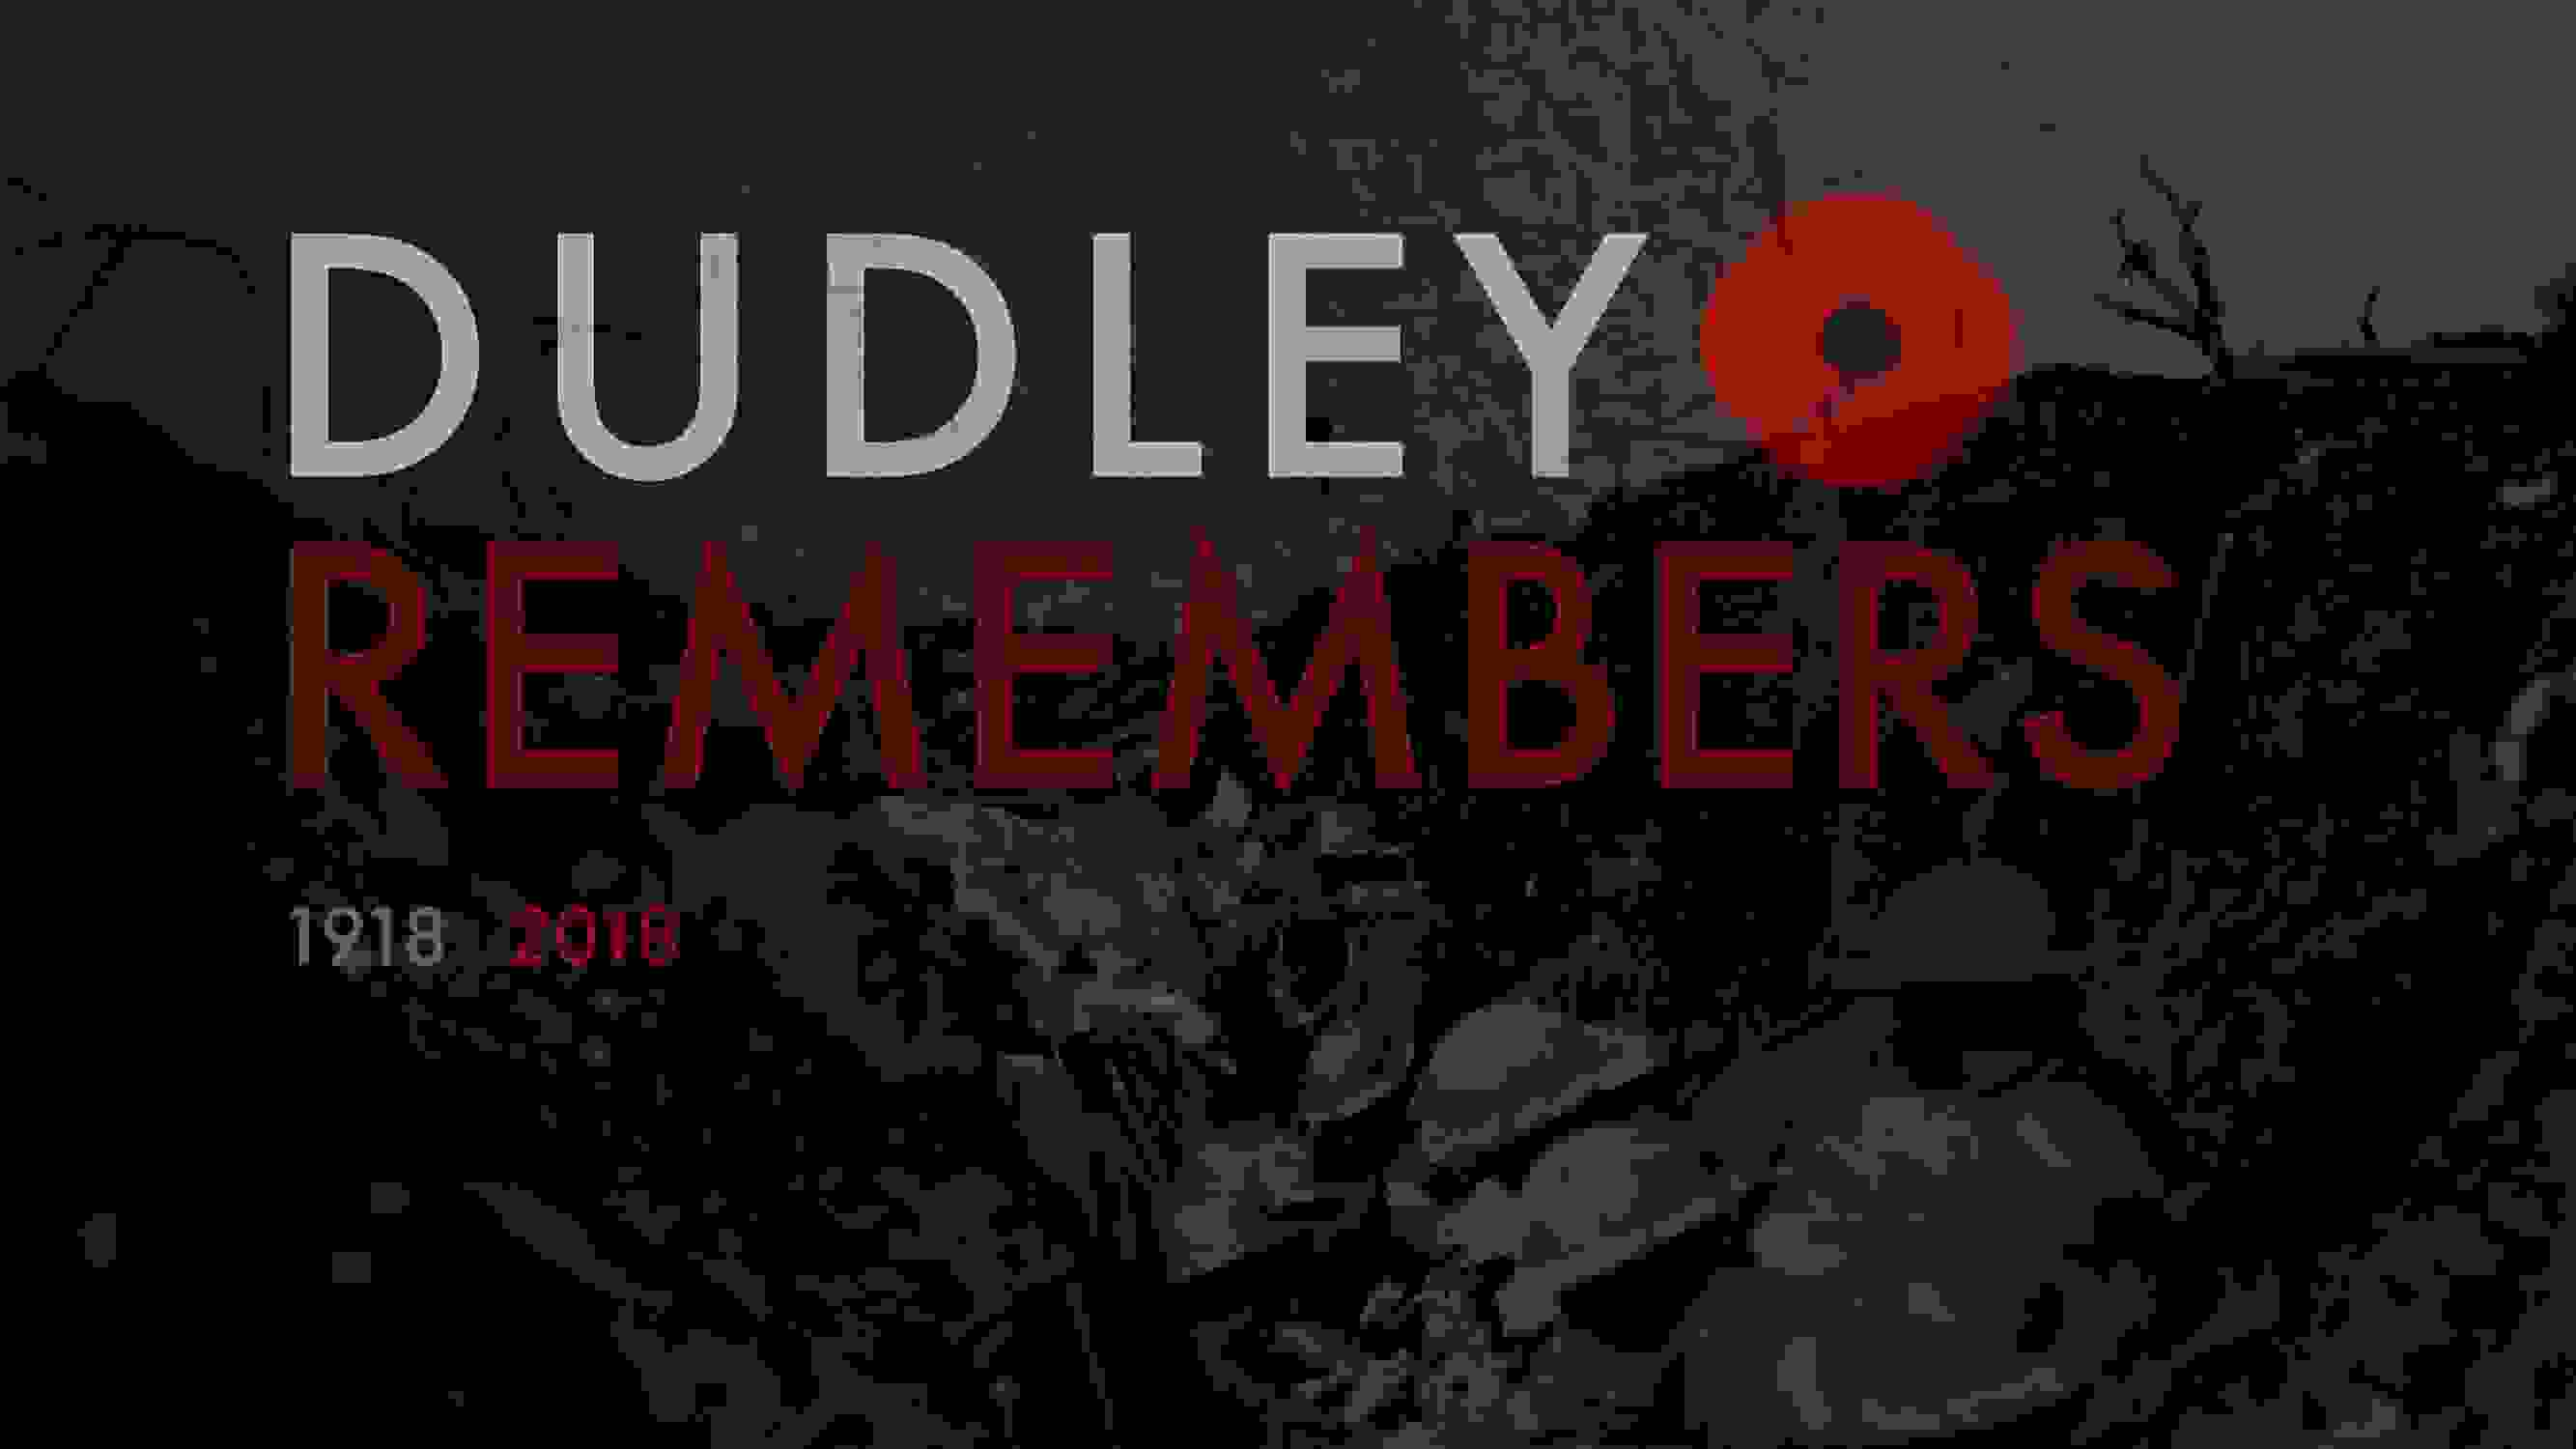 Dudley remembers